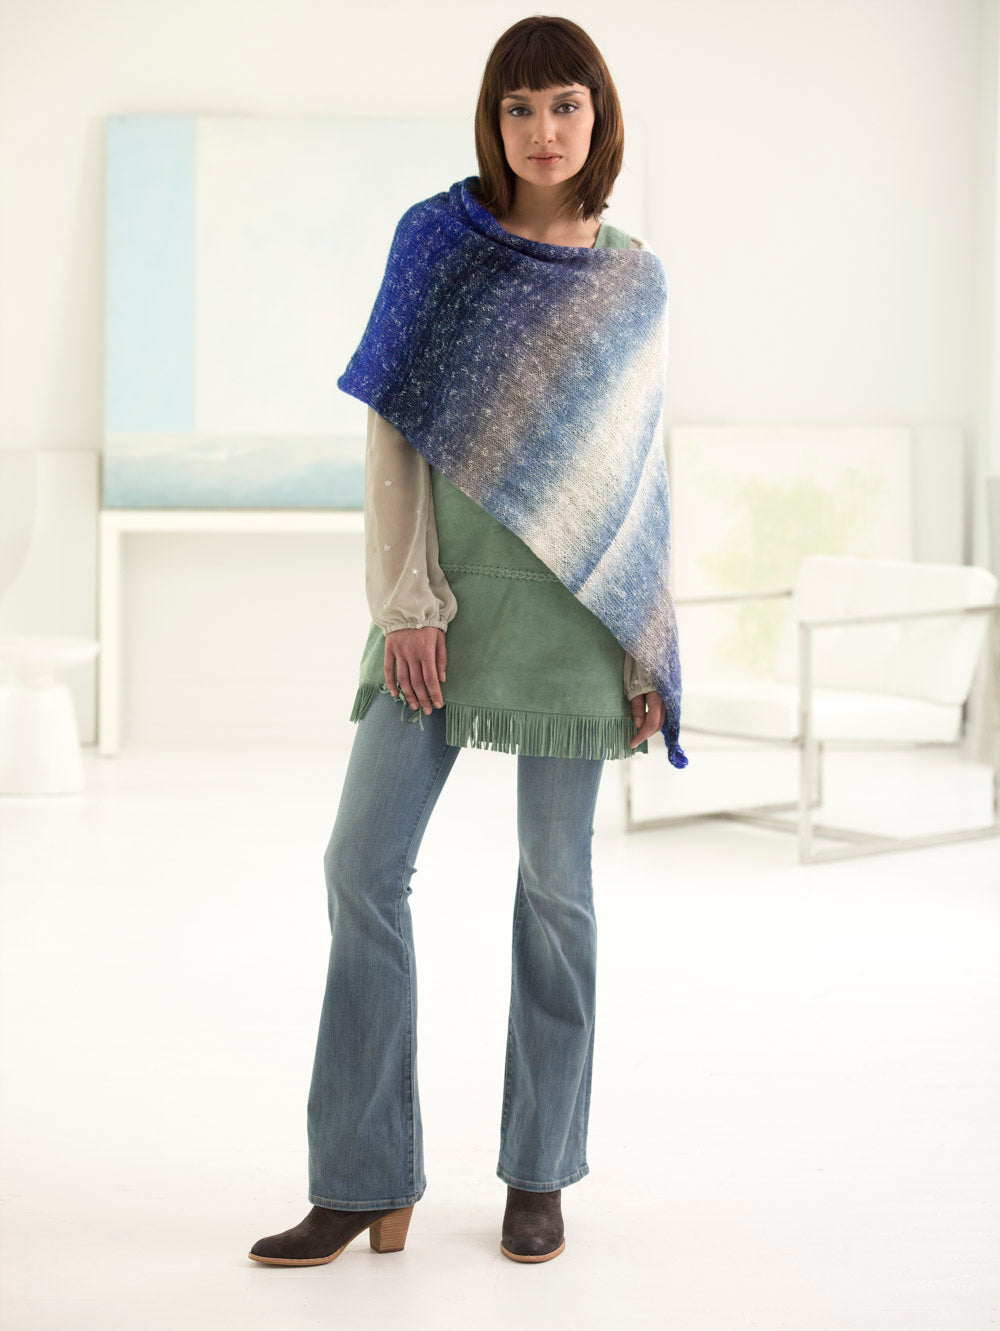 2 ball knitted poncho pattern from Lion Brand, uses Shawl in a Ball yarn